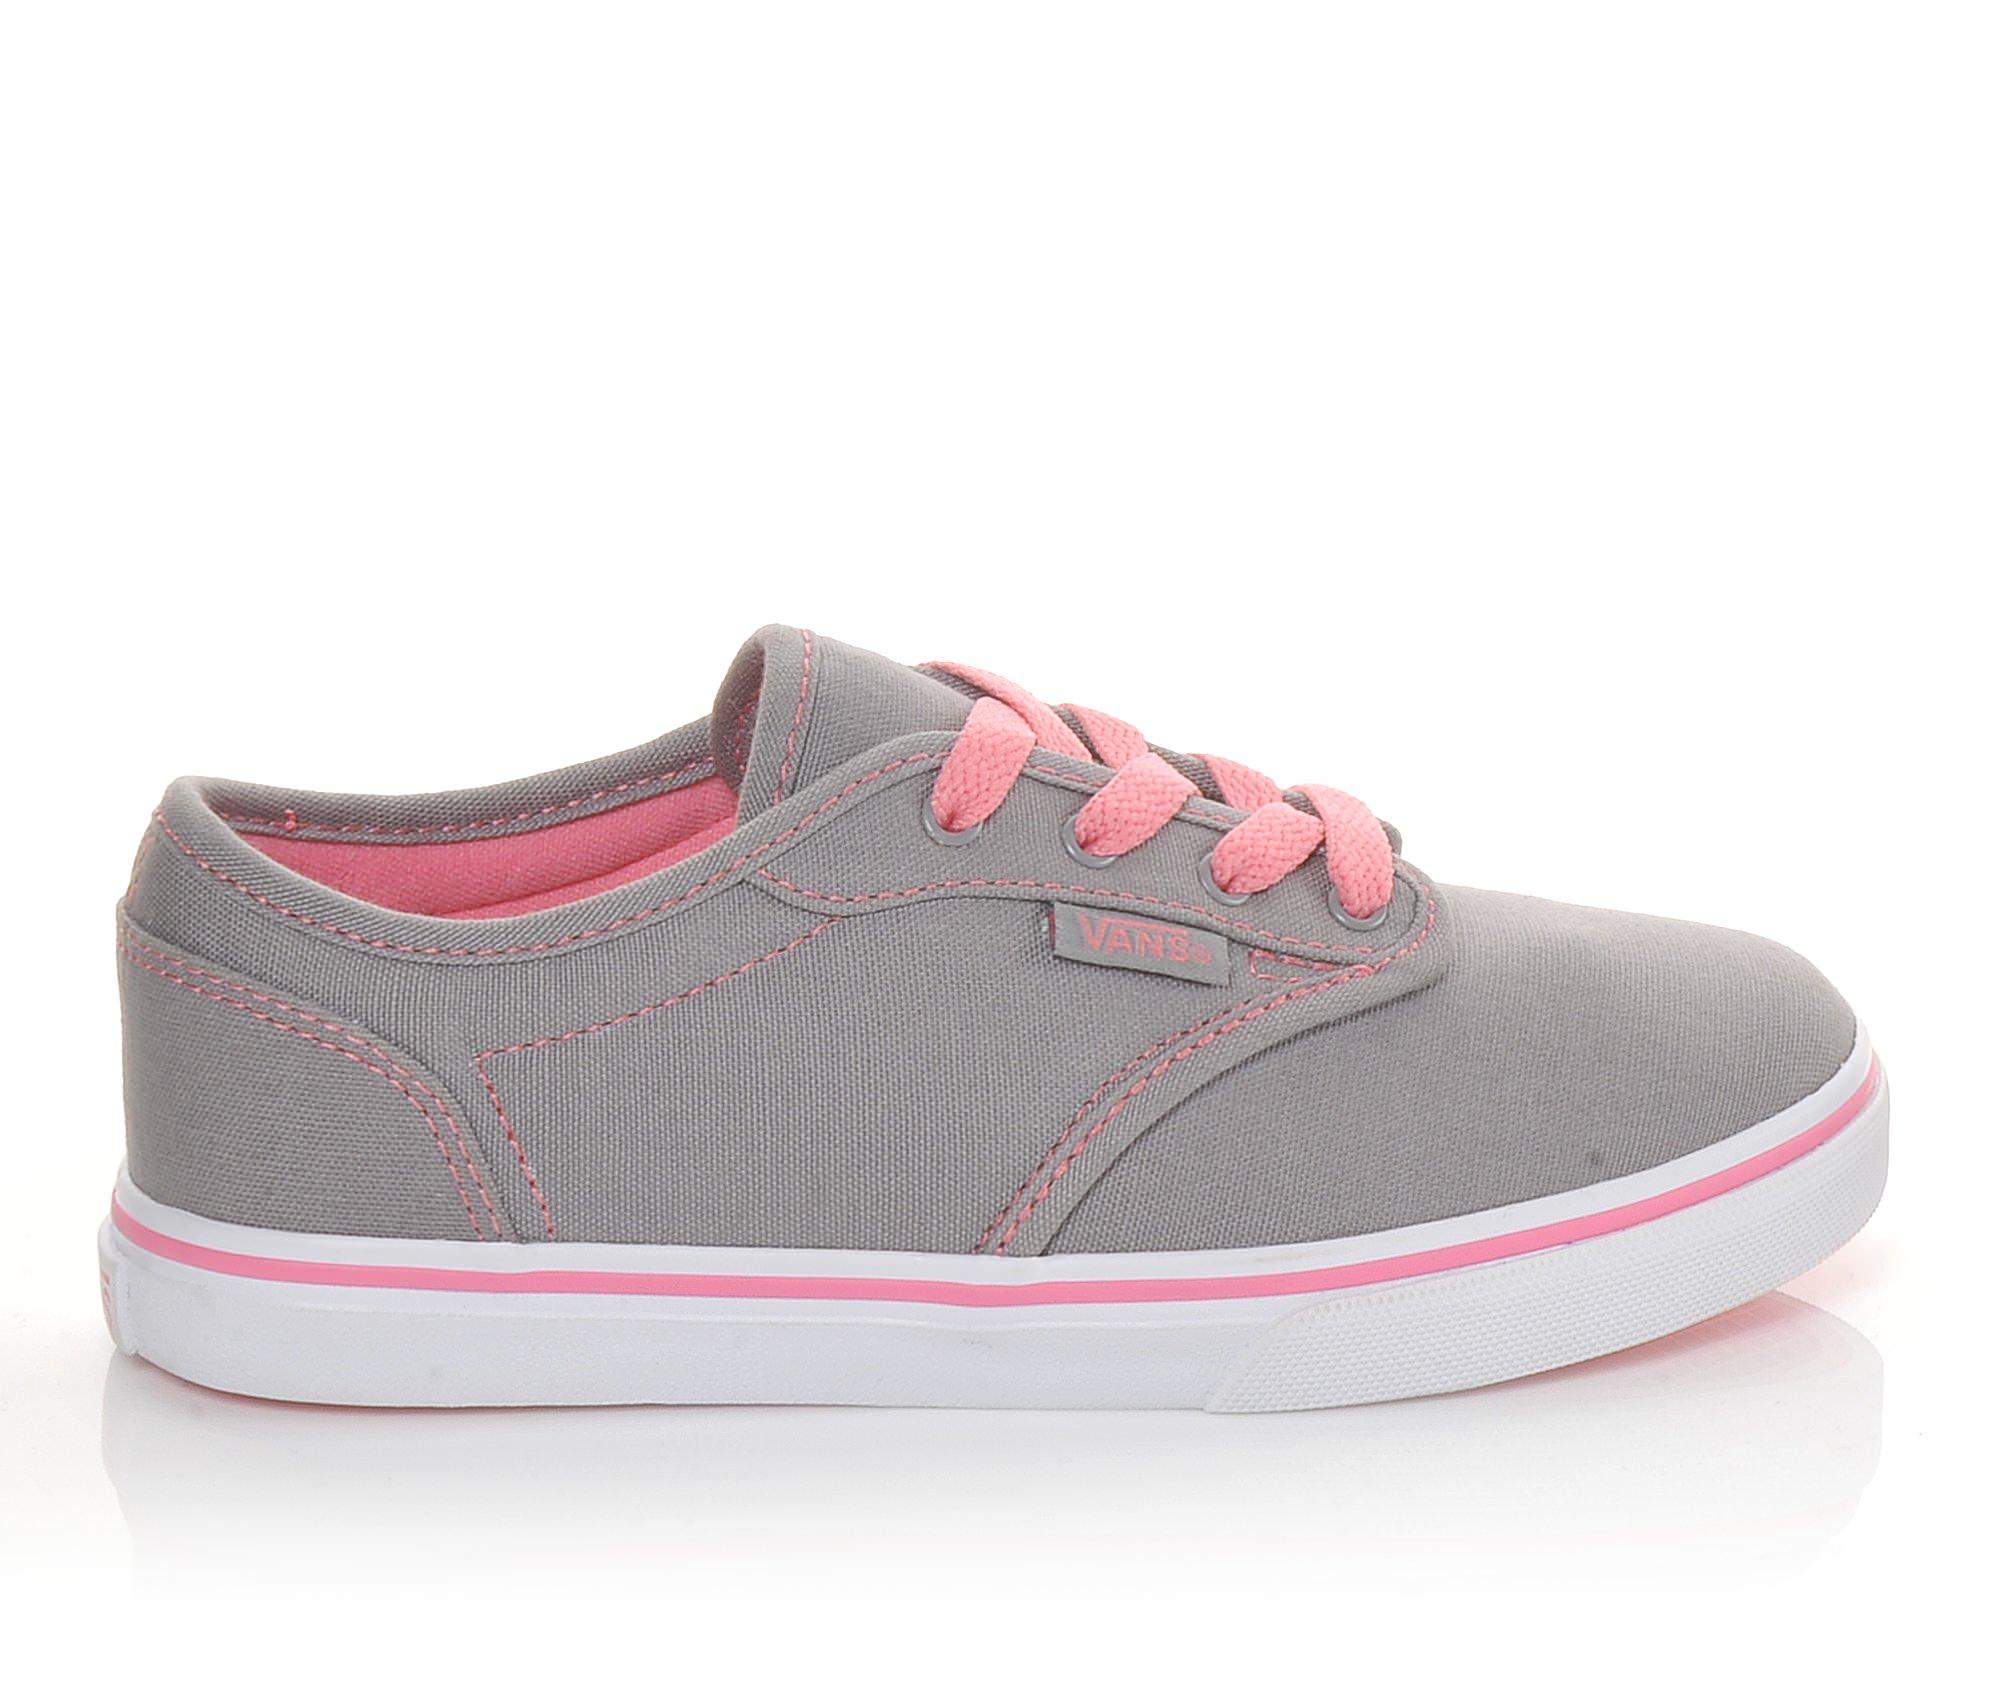 Girls' Vans Atwood Low G Skate Shoes (Grey)